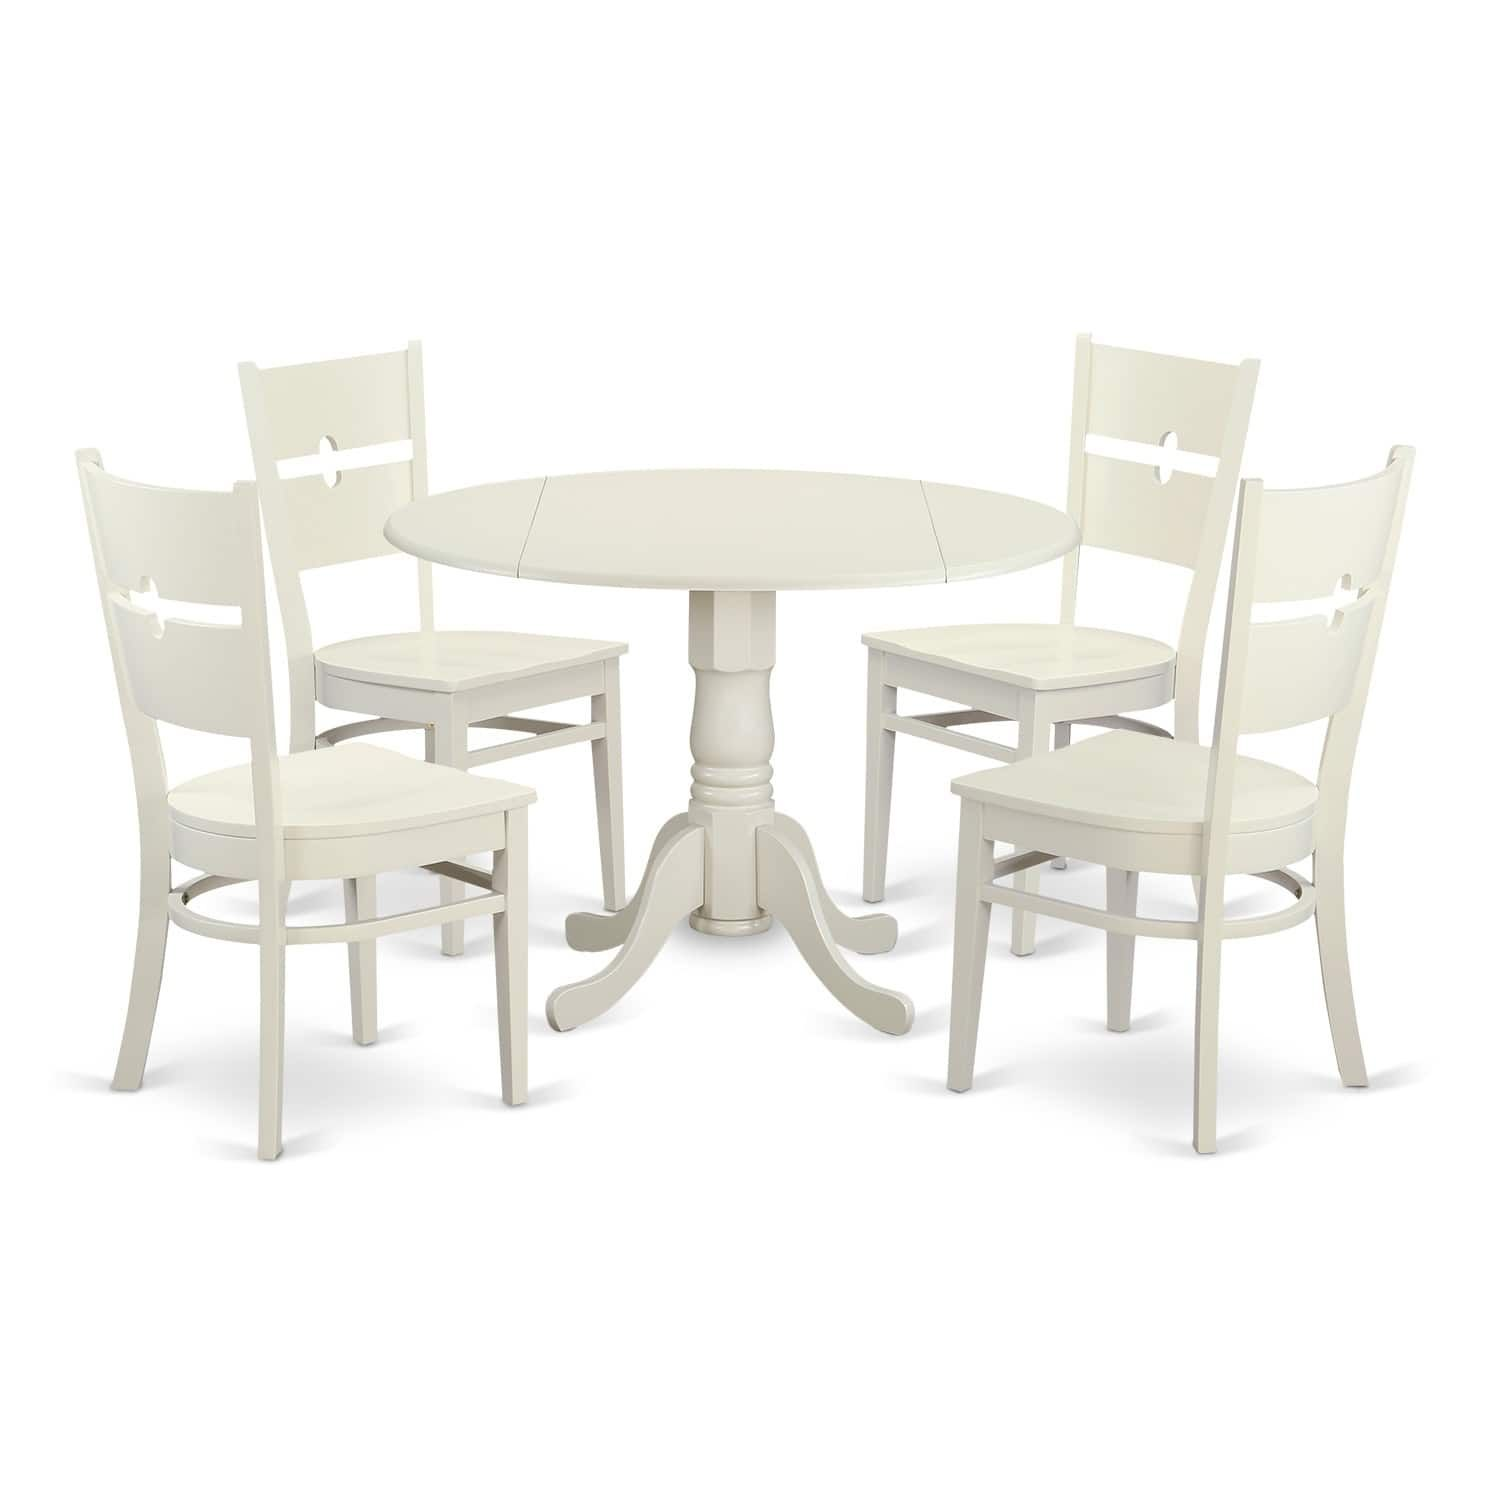 DLRO5-W 5 Pc Kitchen set for 4-Dining Table and 4 Kitchen Chairs ...